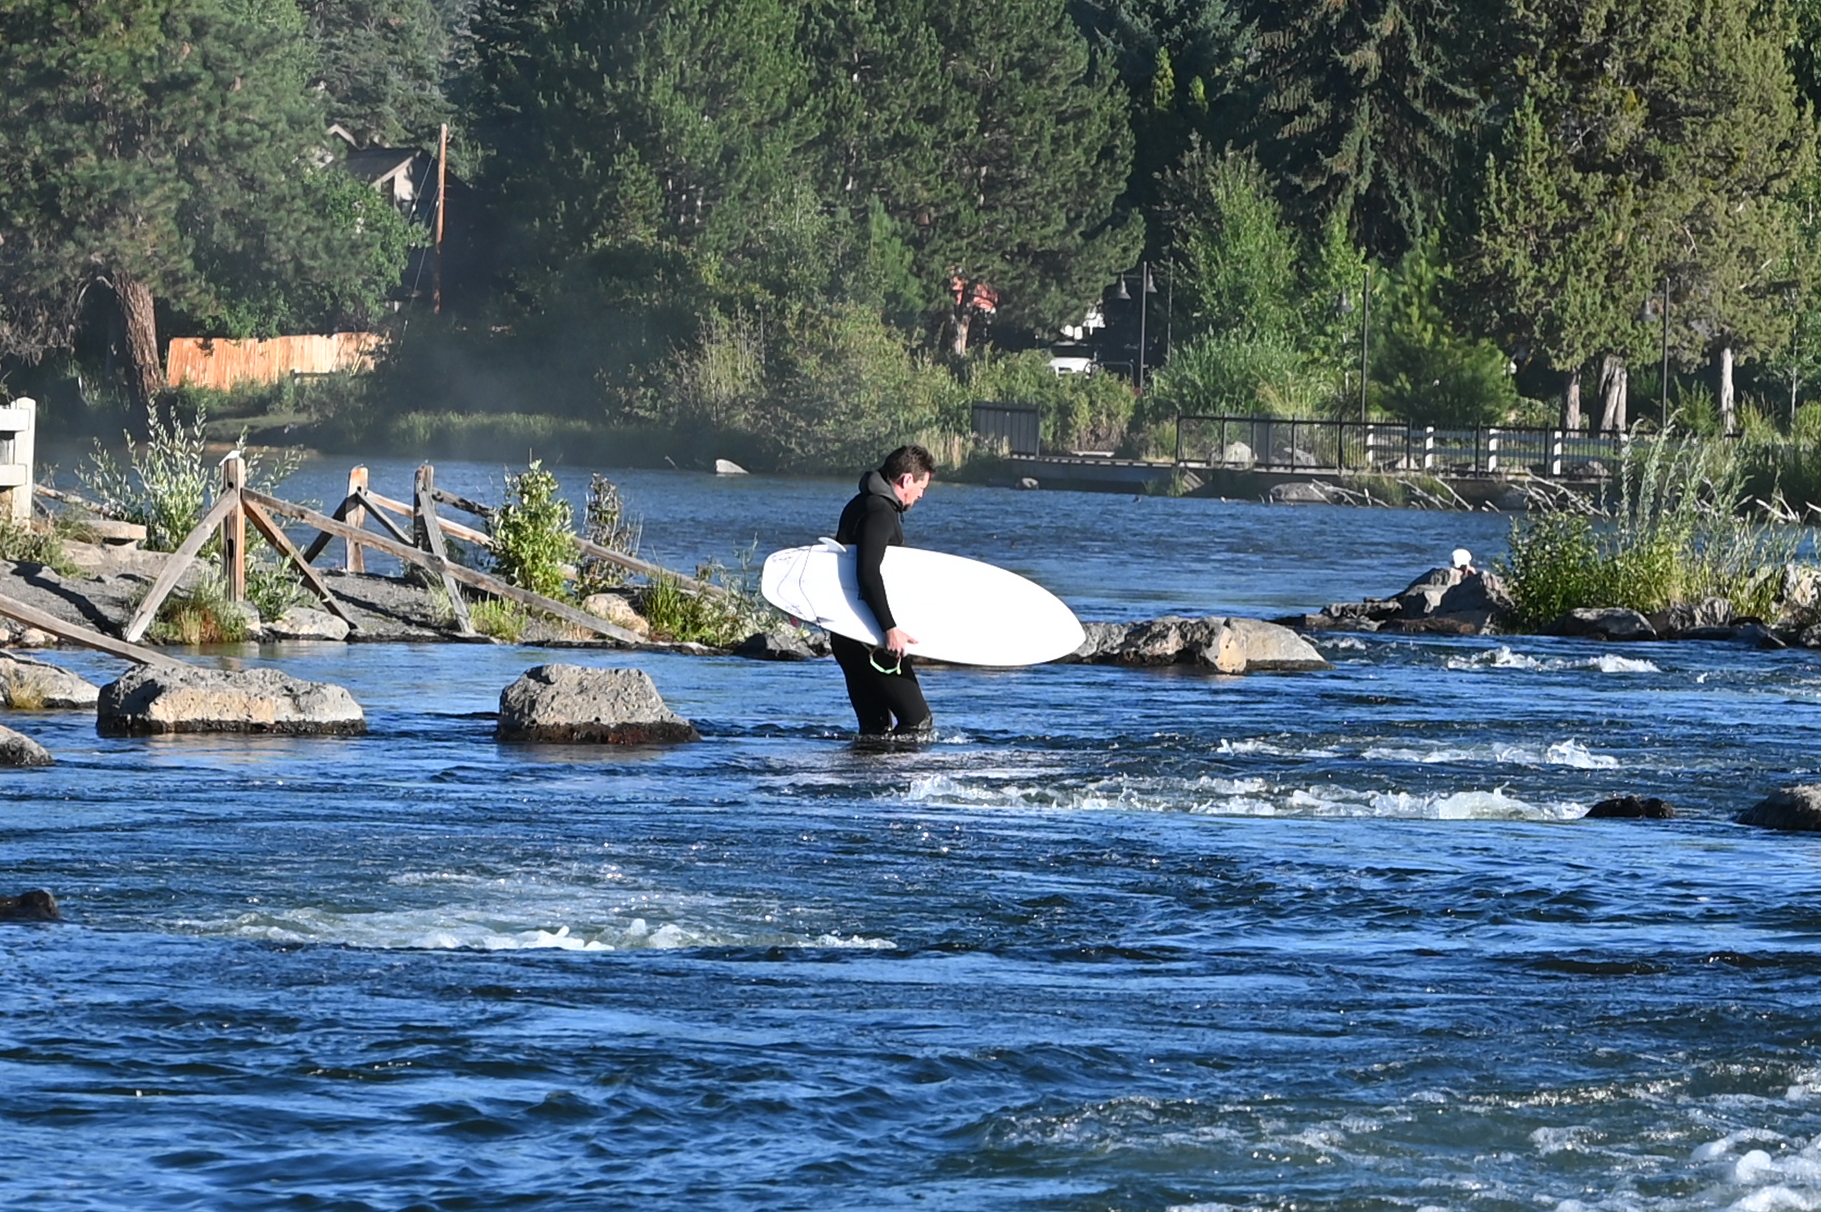 a person holding a surfboard crosses a river with rocks in background